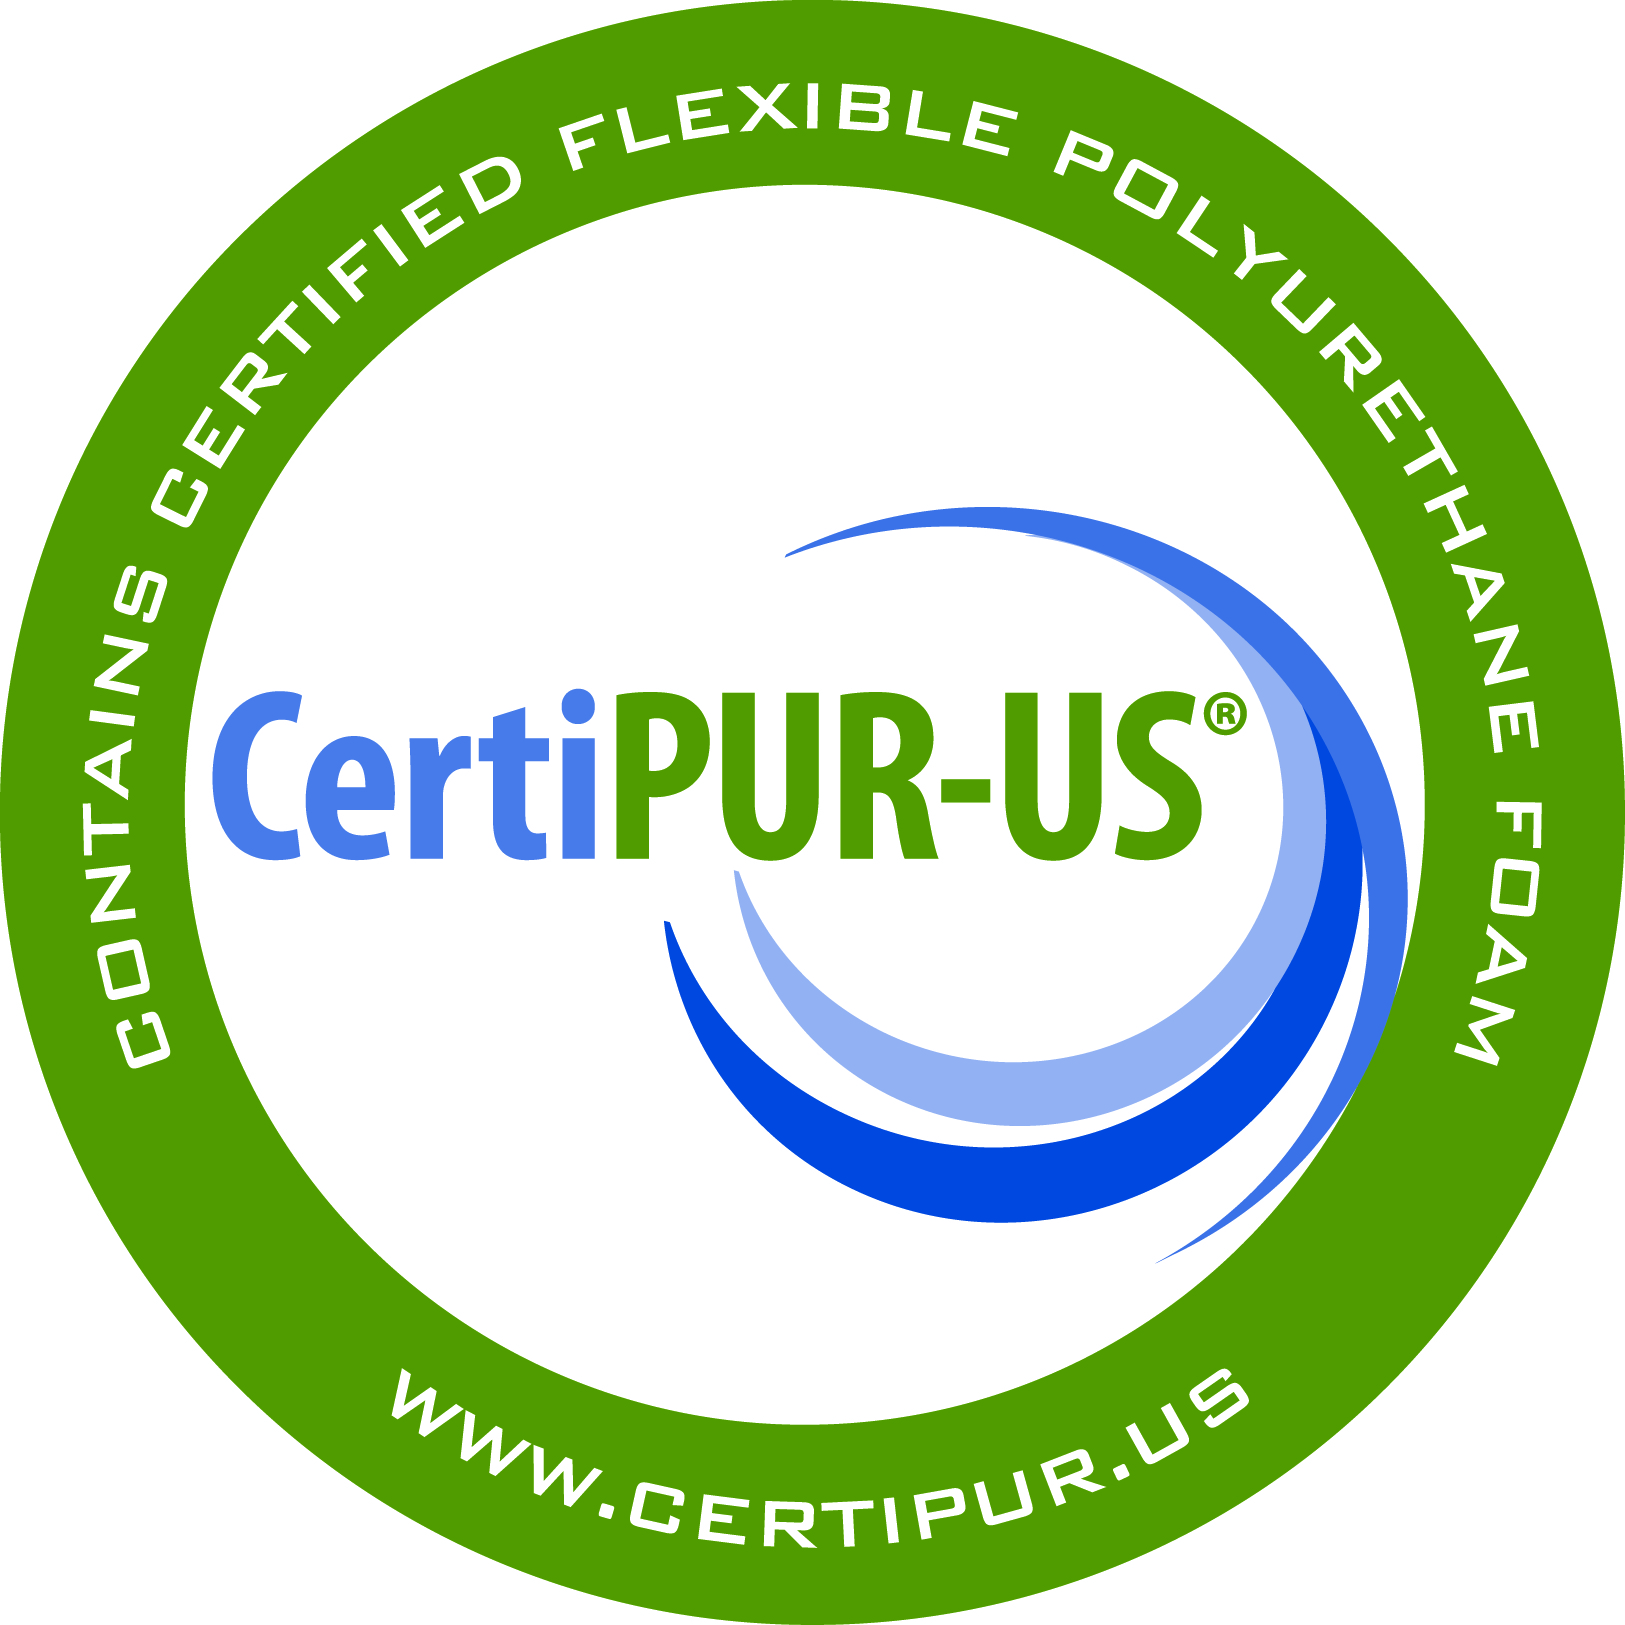 certipur-us-contains-foam.jpg